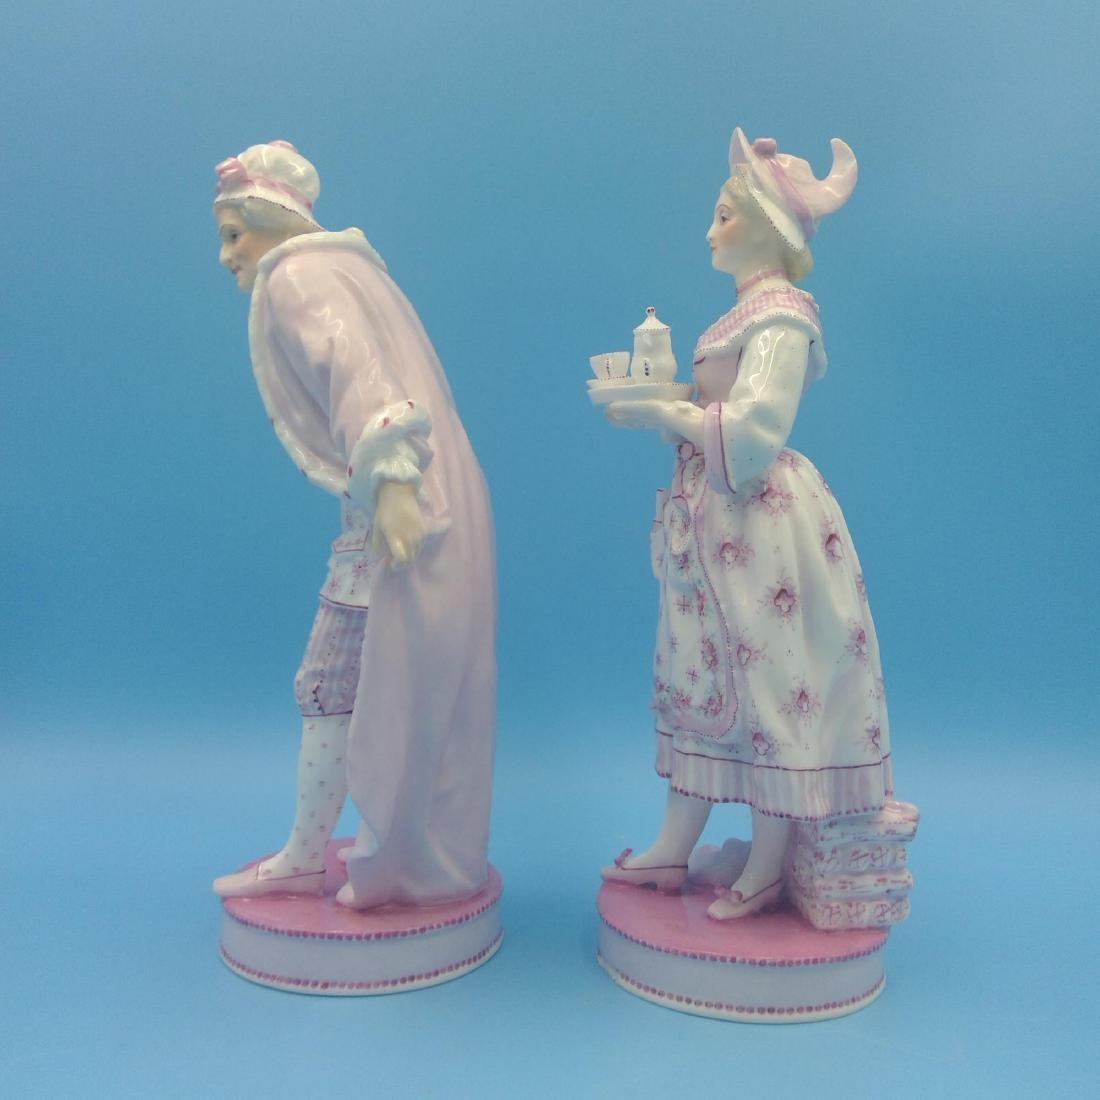 PAIR OF 19thC FRENCH VION & BAURY FIGURINES - 2